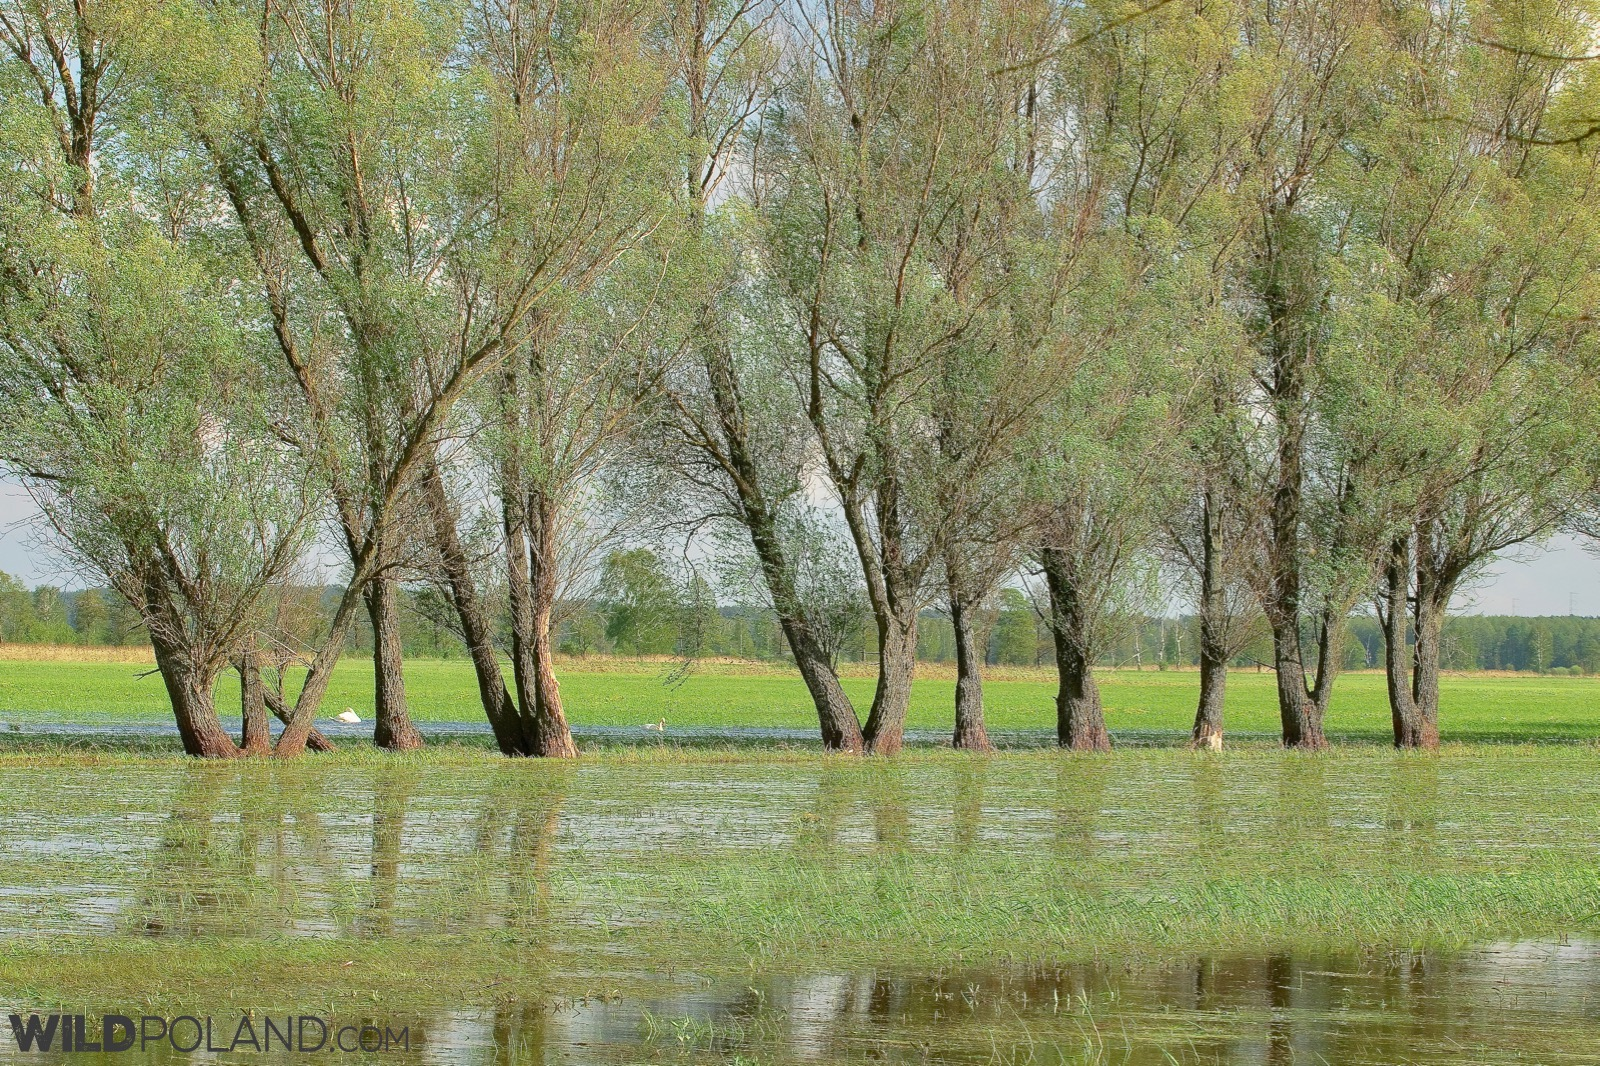 An extensive flooding at the Biebrza Marshes